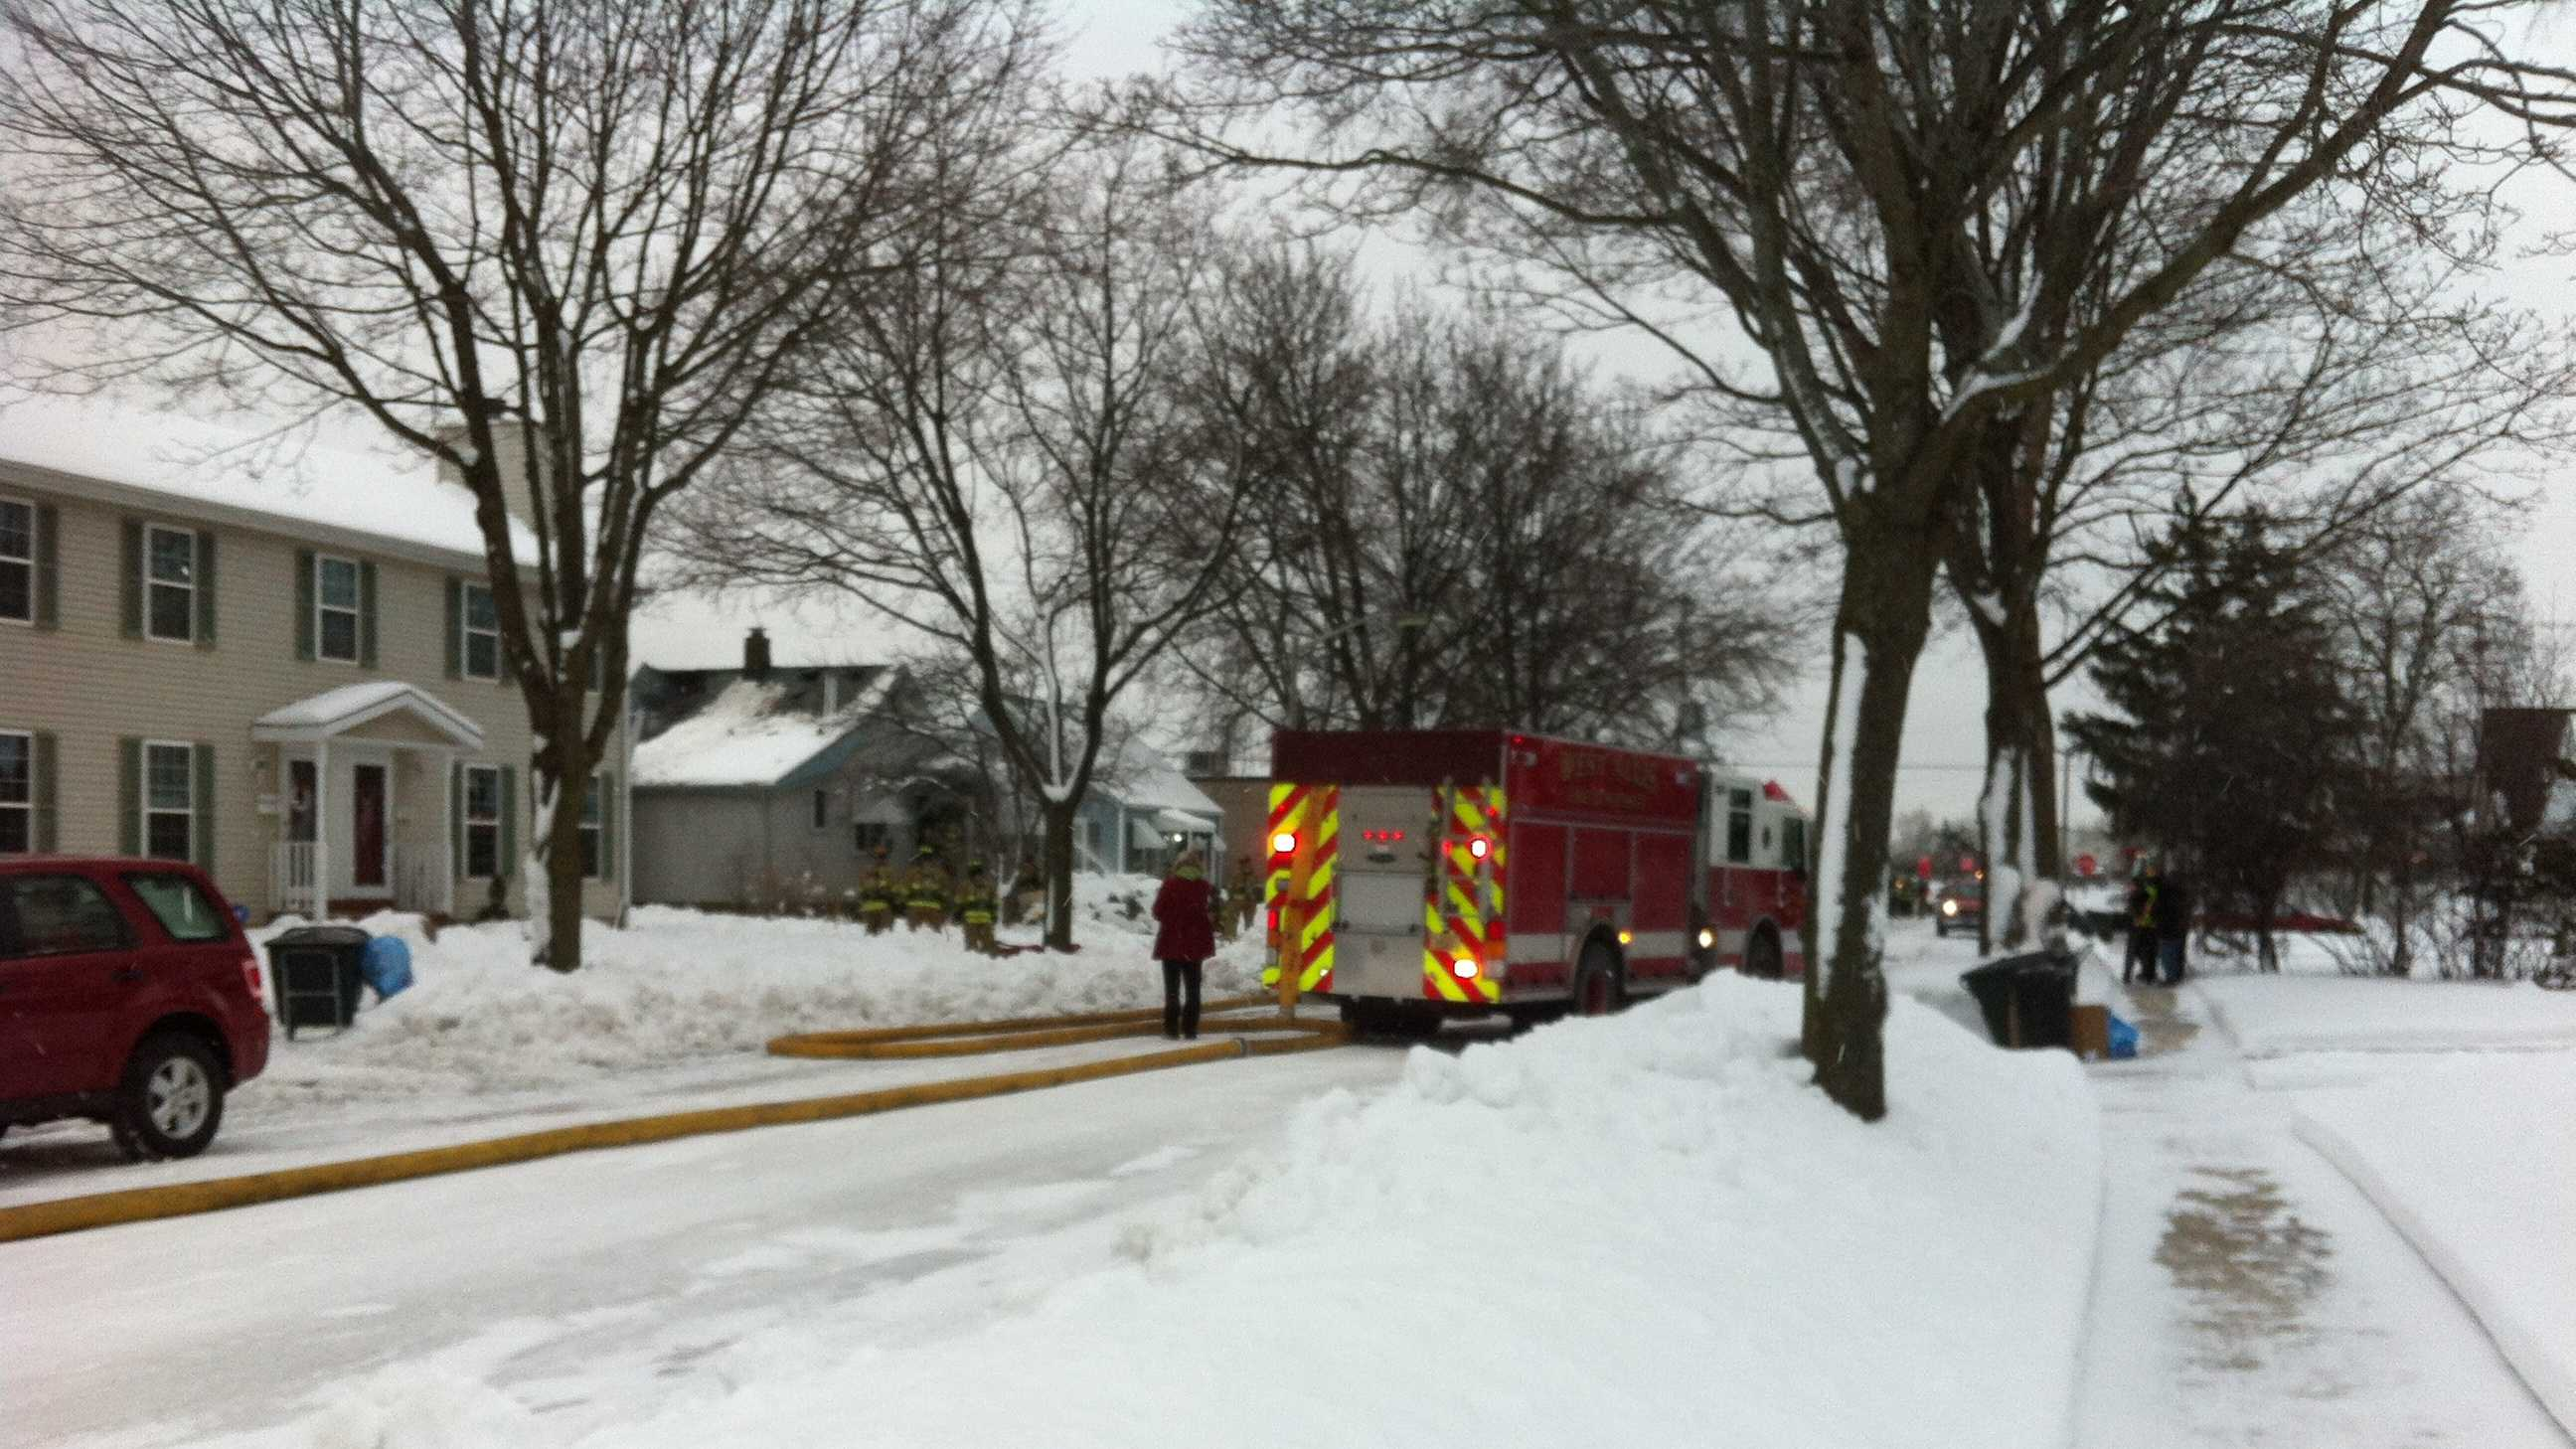 West Allis fire1